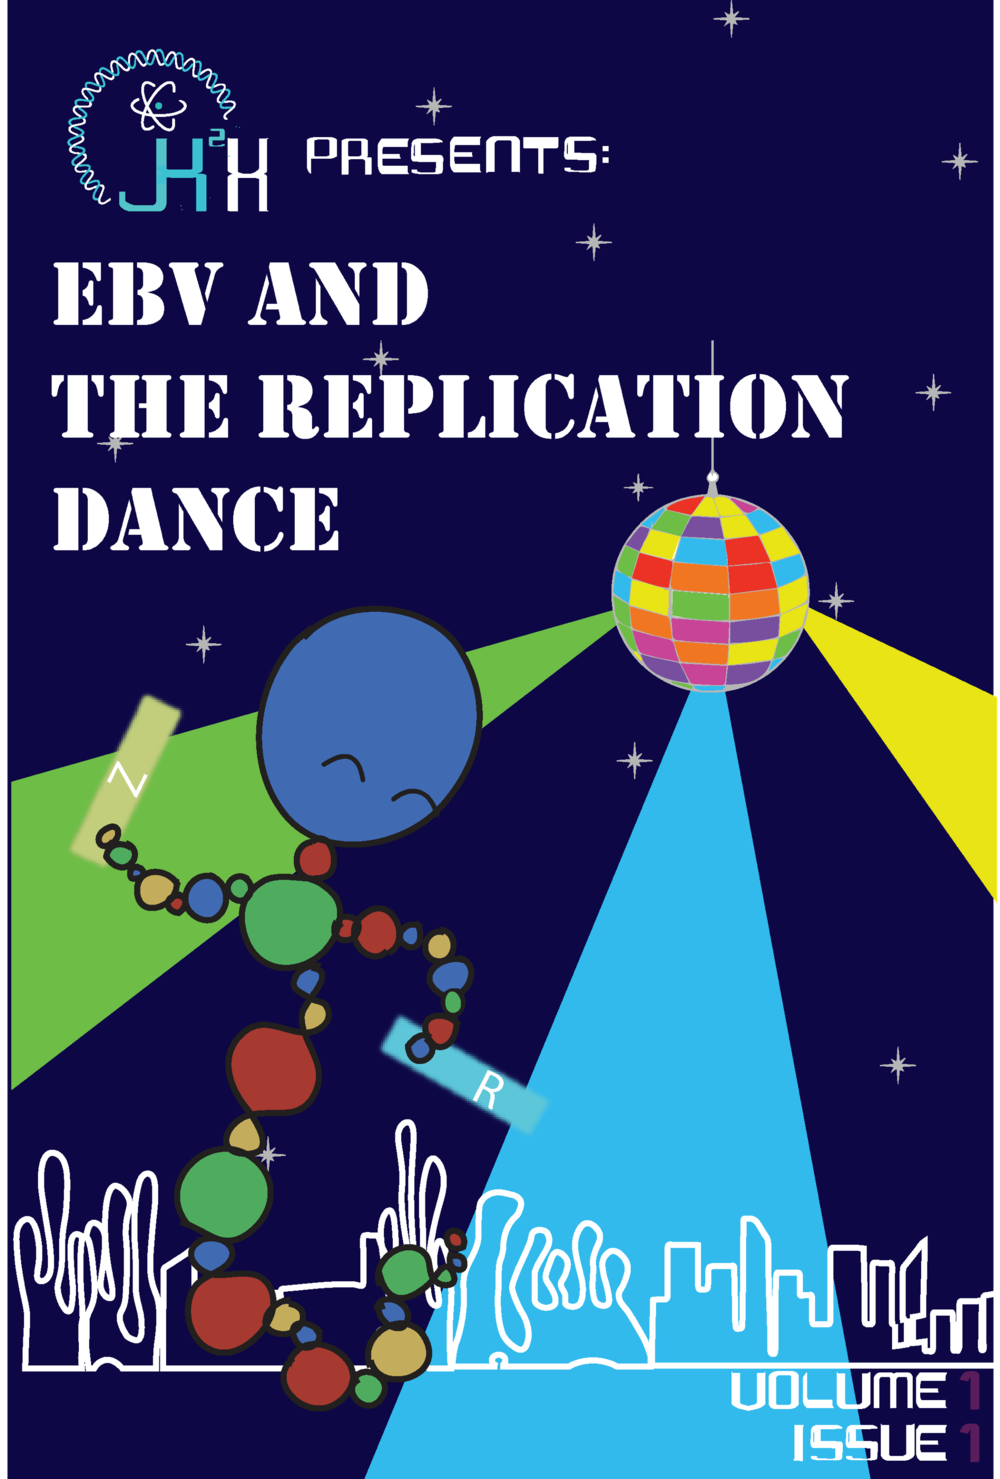 EBV and the Replication Dance